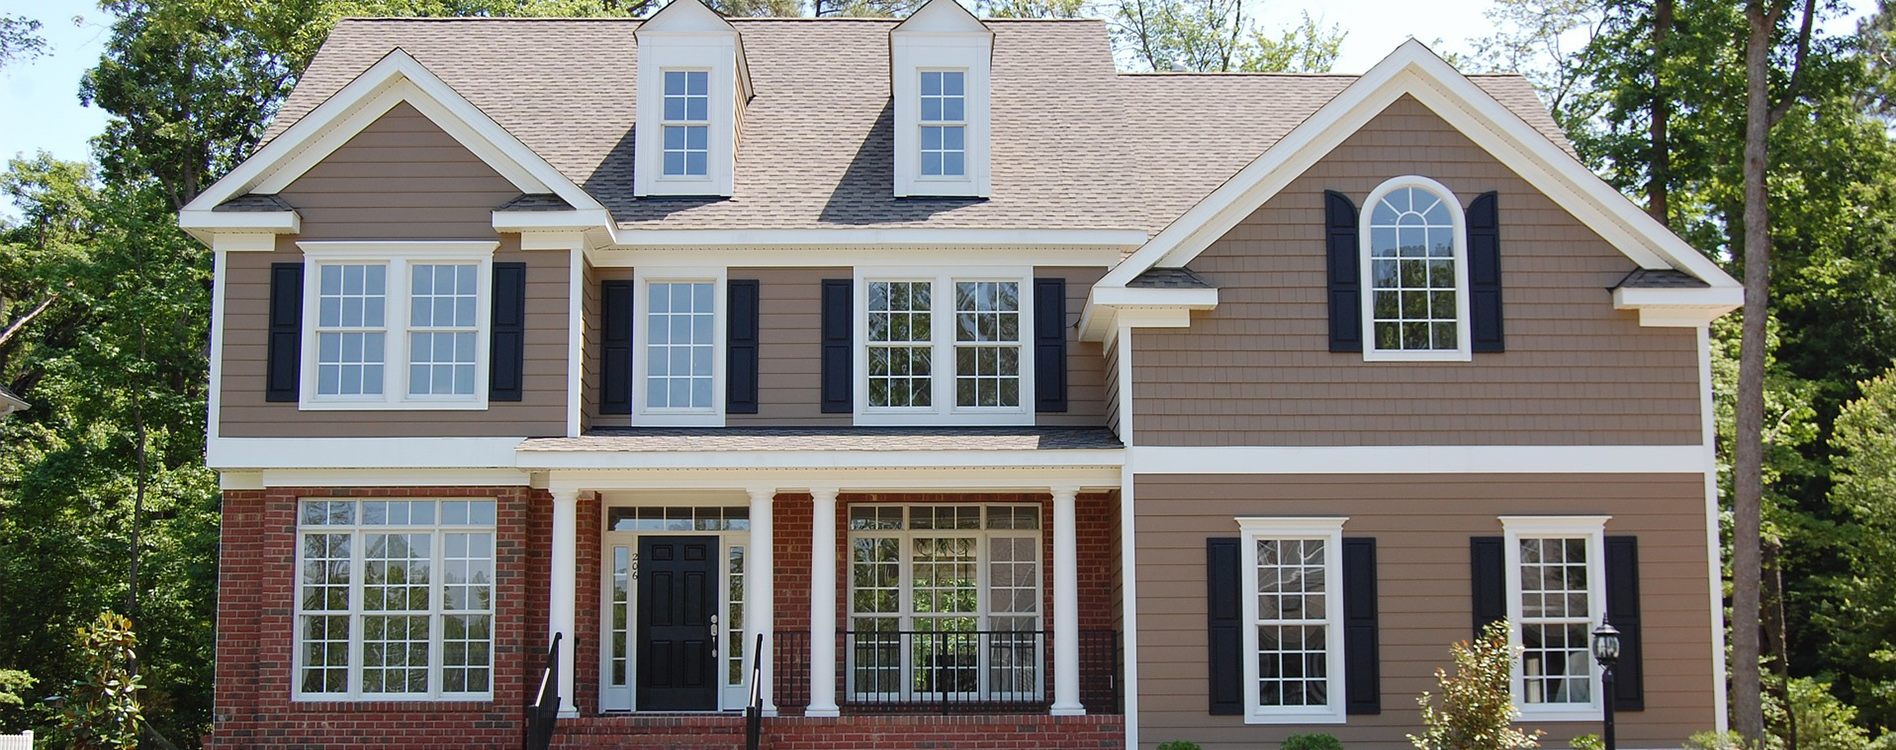 Uncategorized exterior residential windows - How To Paint Your Trim And Shutters